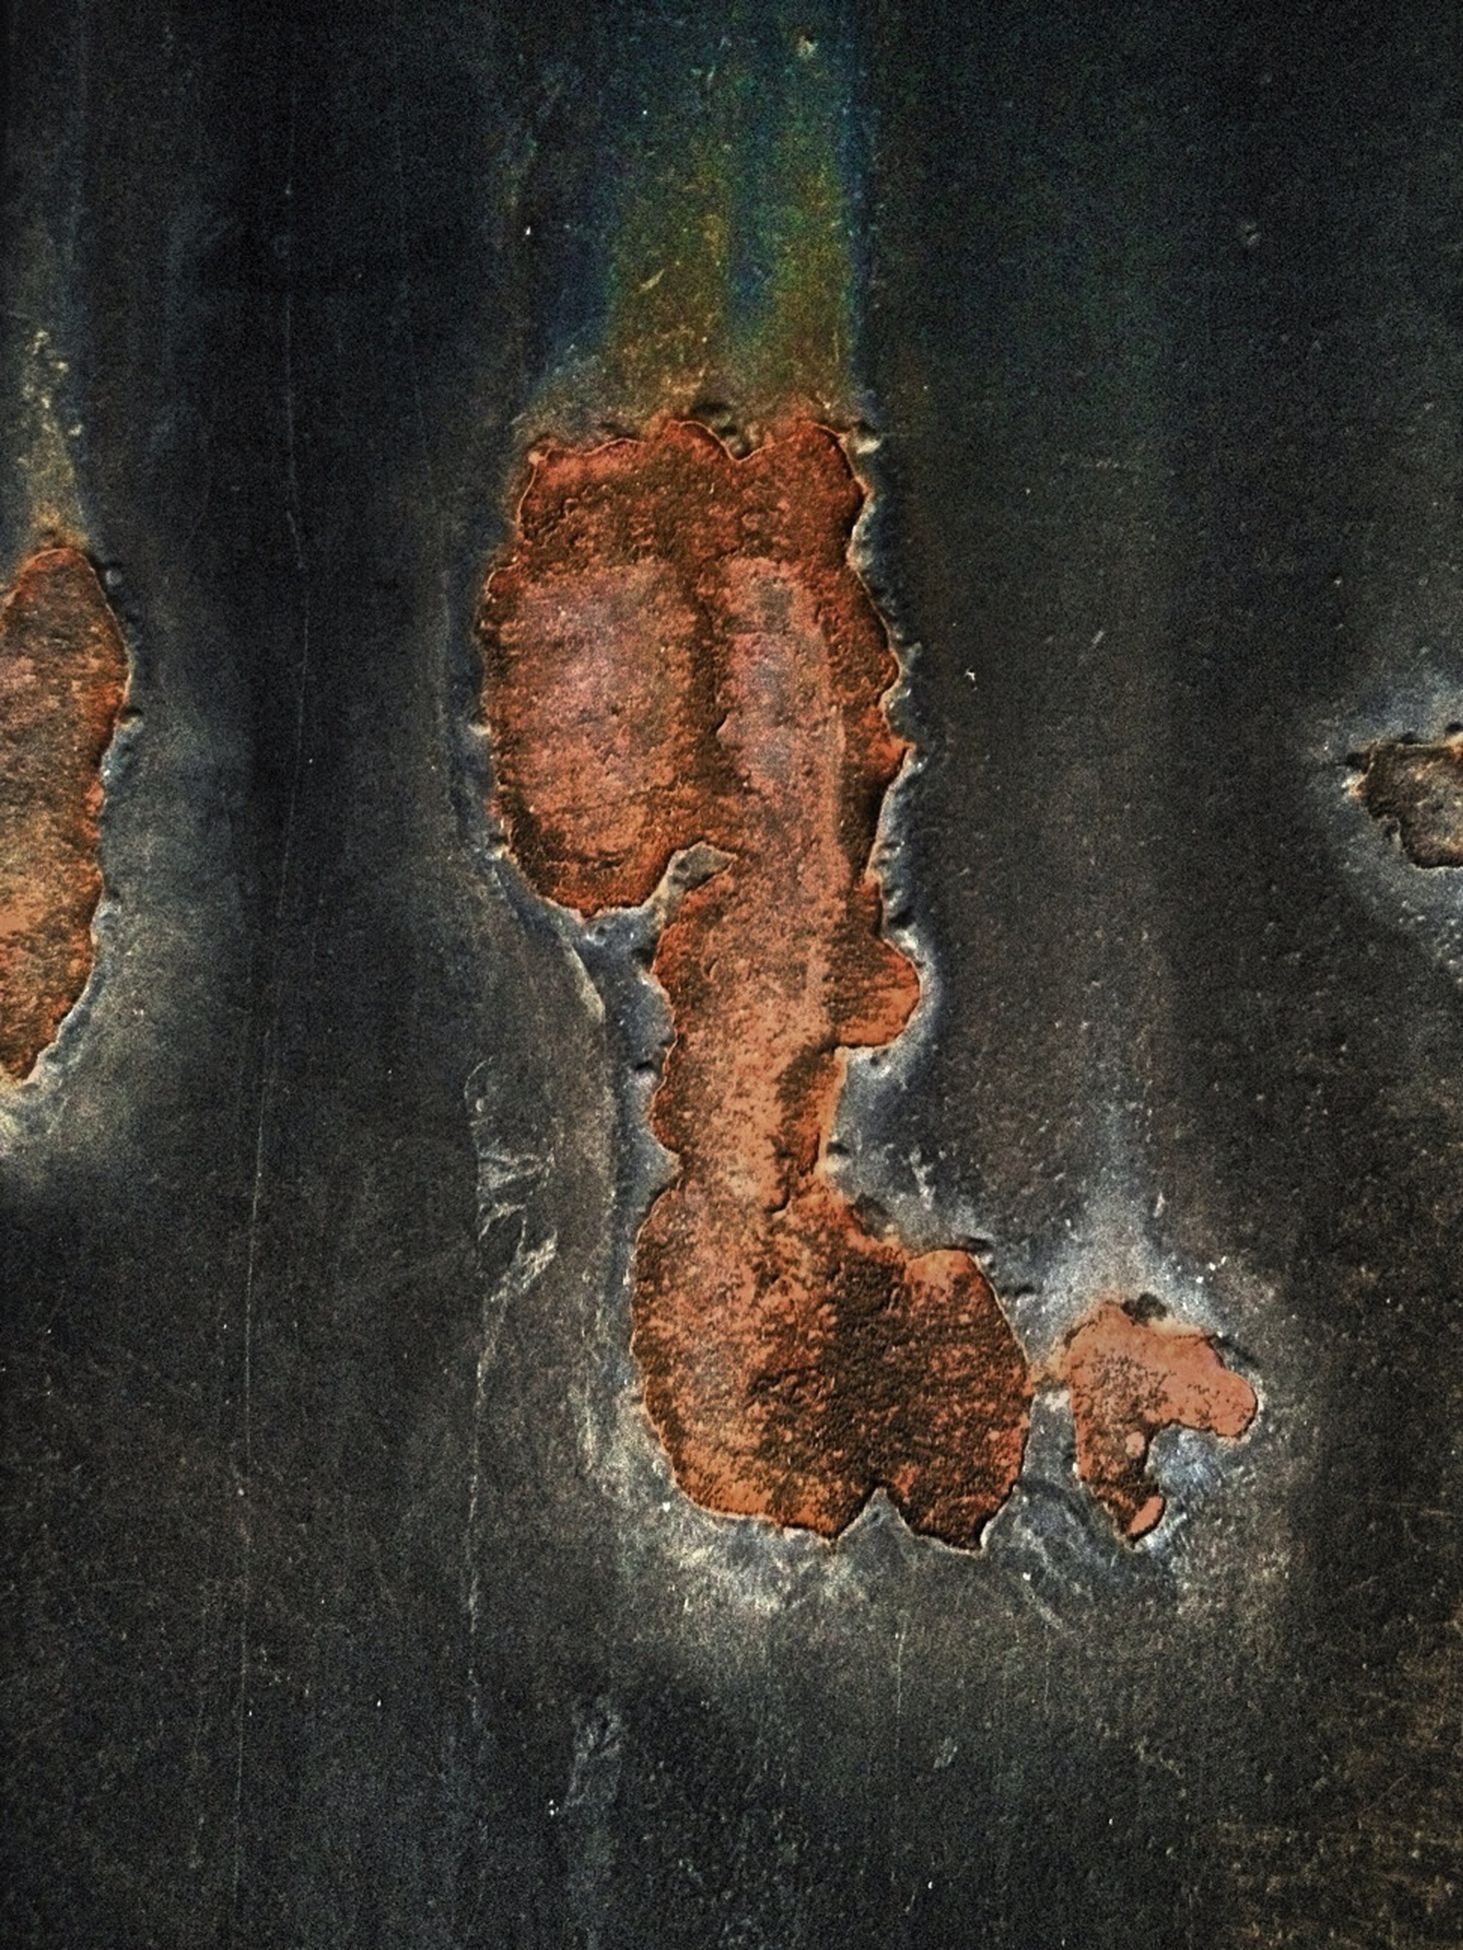 textured, close-up, rough, full frame, backgrounds, high angle view, weathered, no people, pattern, outdoors, brown, deterioration, night, damaged, natural pattern, old, nature, rusty, abstract